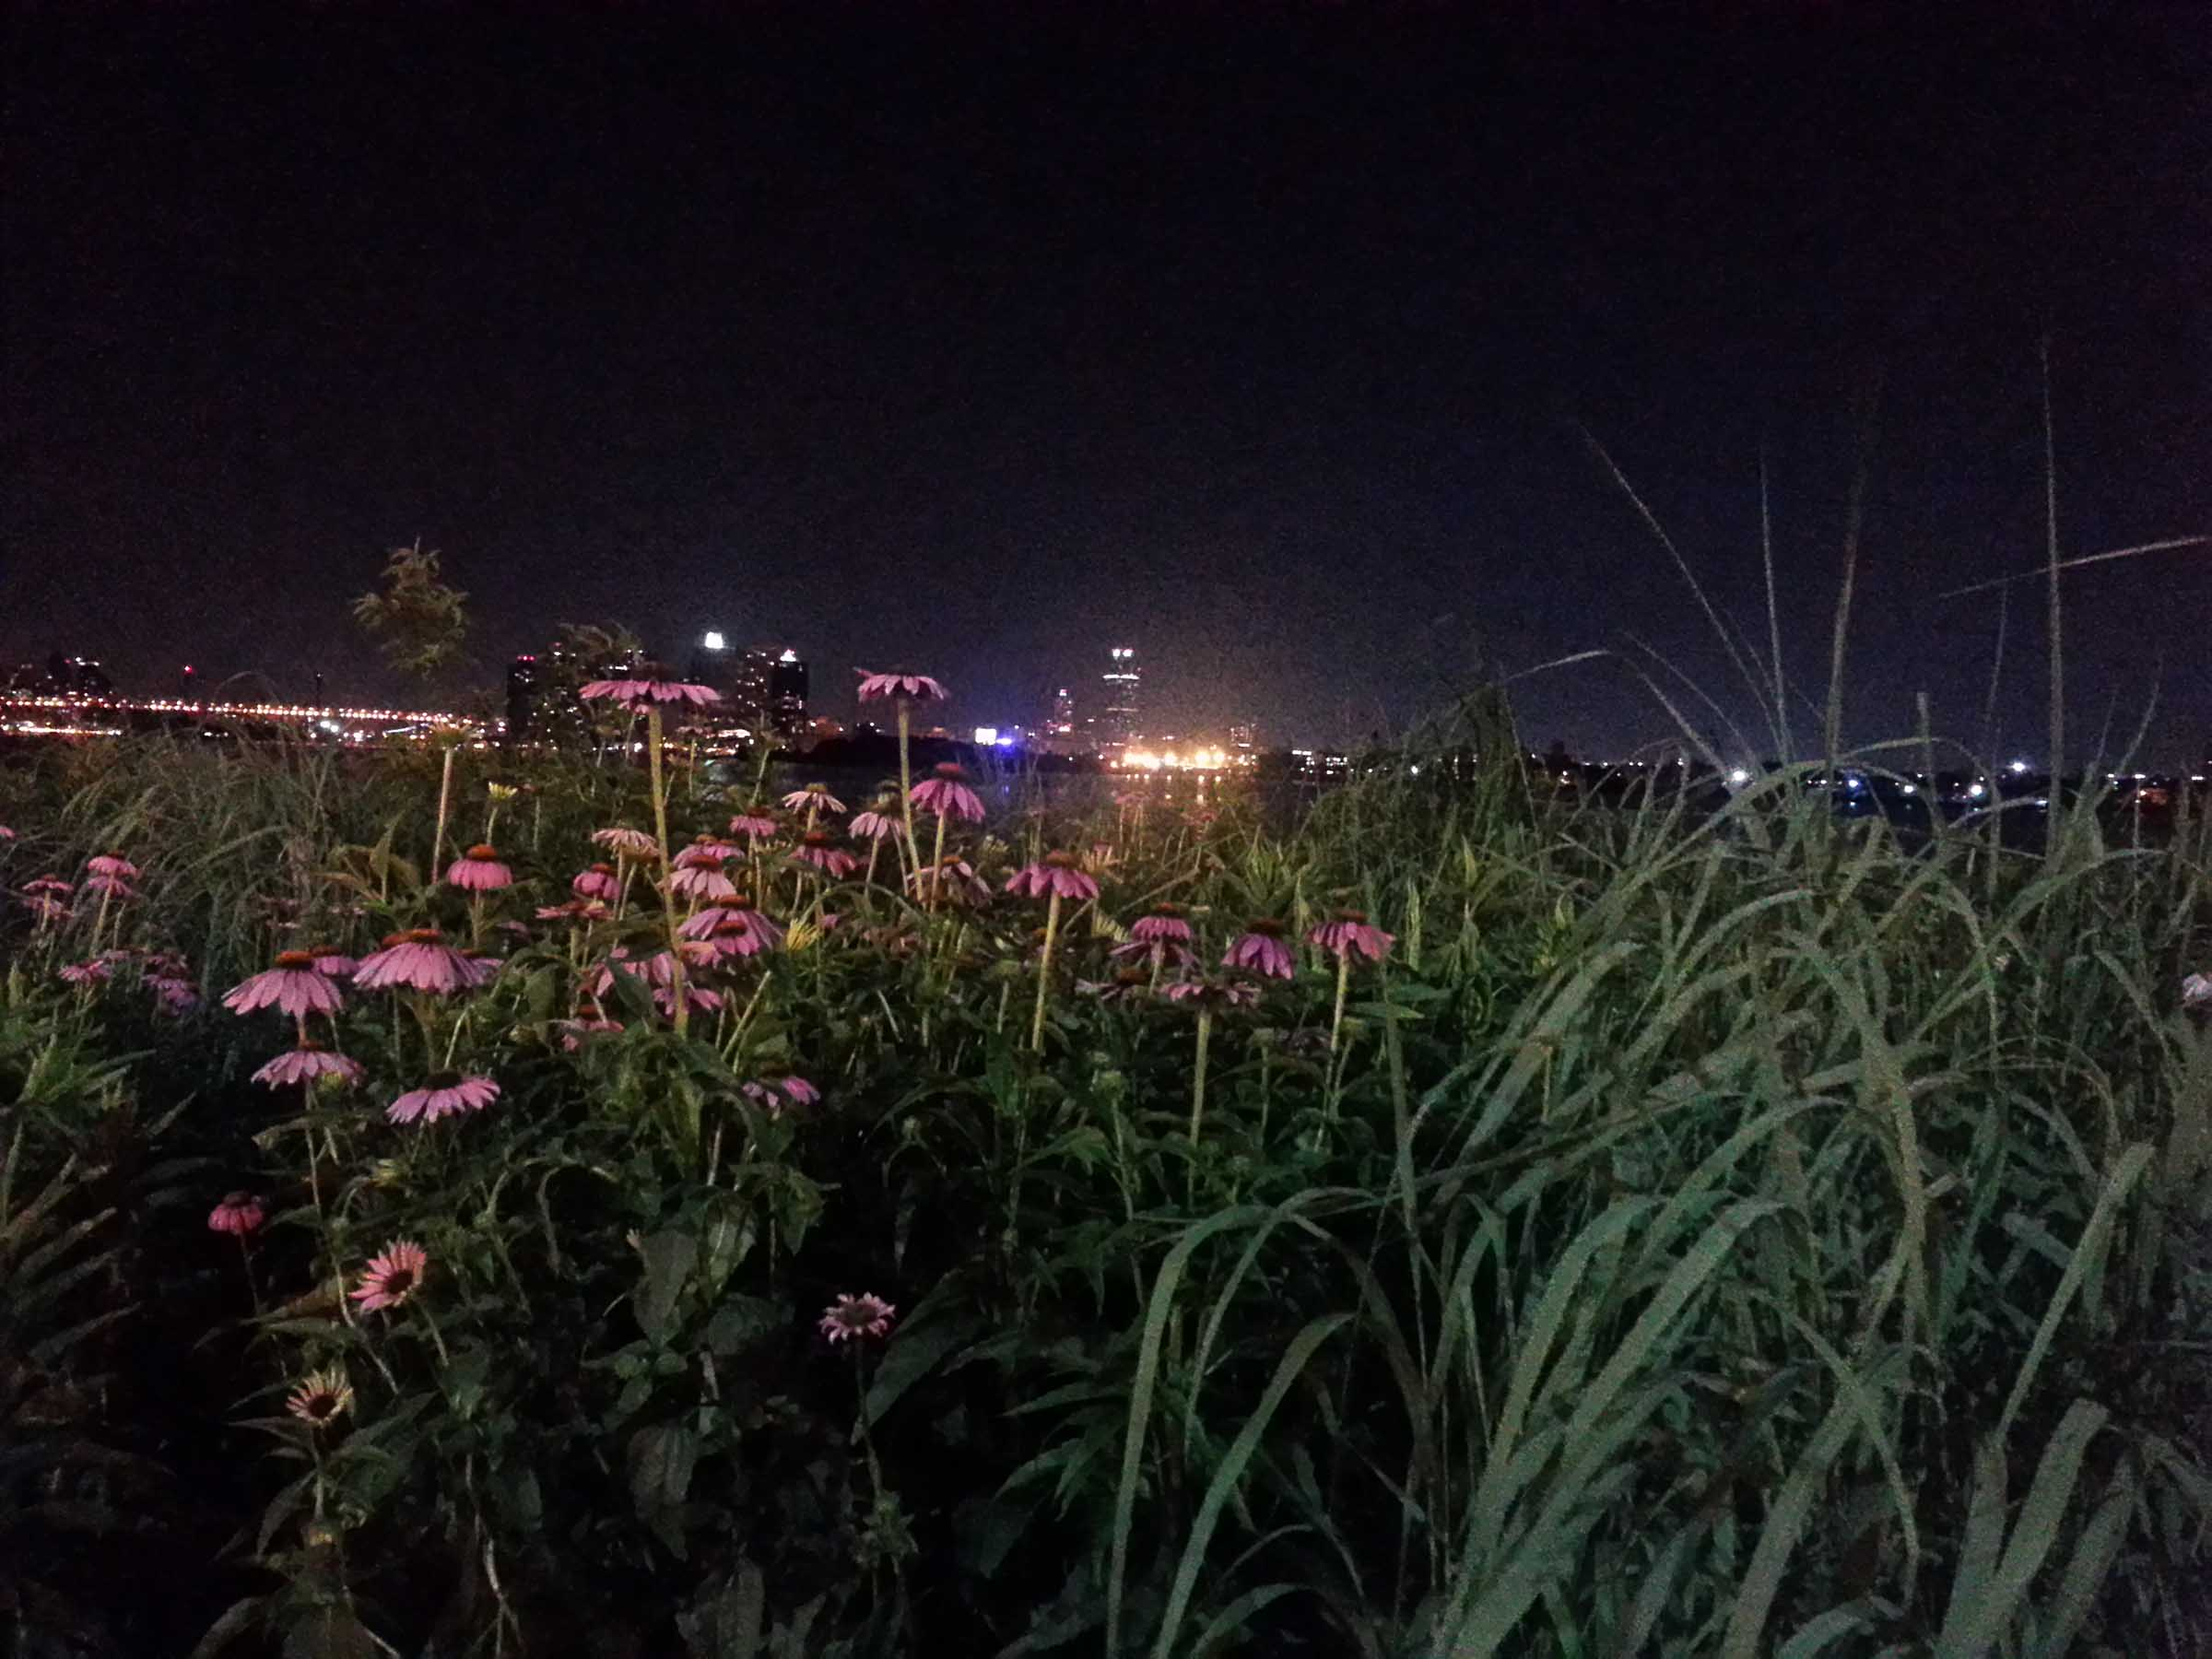 A thicket of tall grass and pink flowers that resemble daisies, on the shore of the East River Park at night.